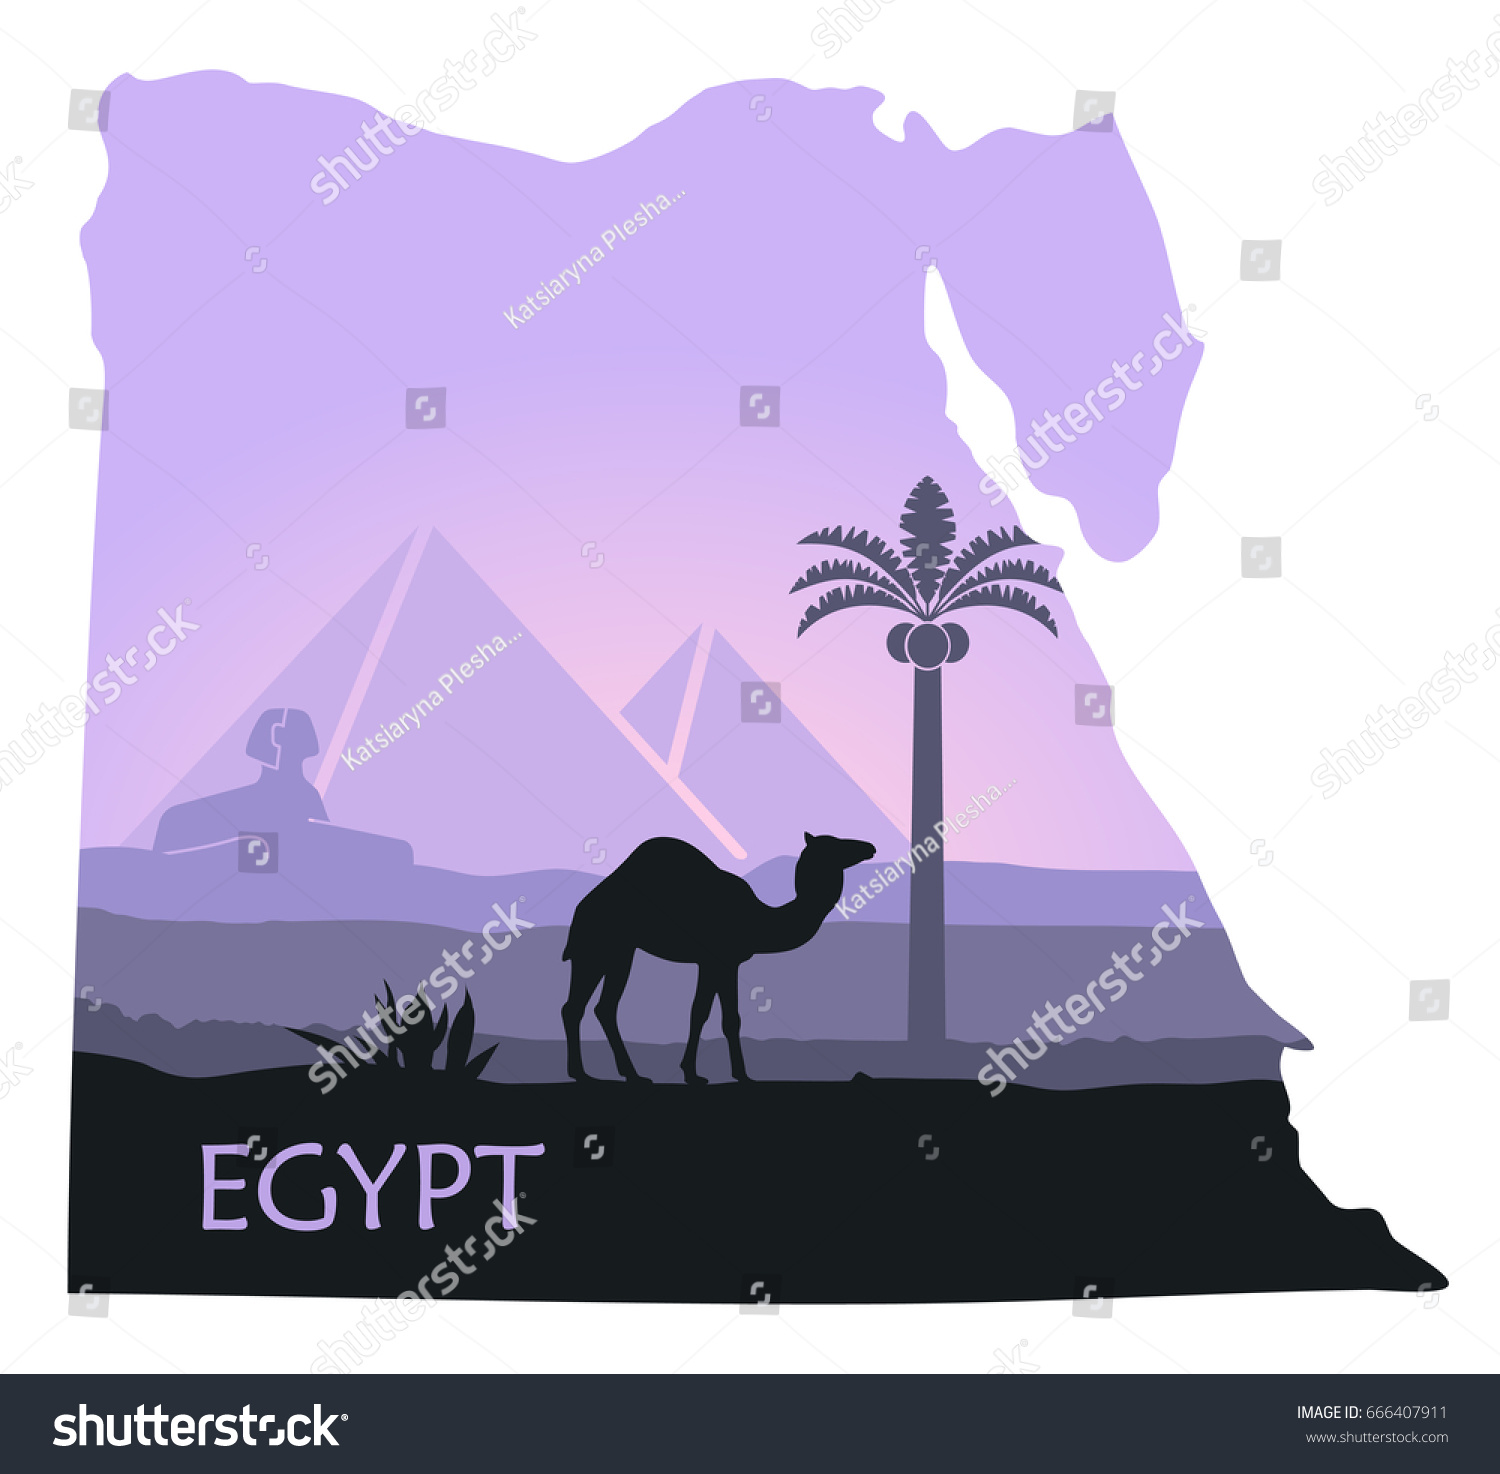 Map Egypt Image Landscape Pyramids Sphinx Stock Vector - Map of egypt pyramids and sphinx